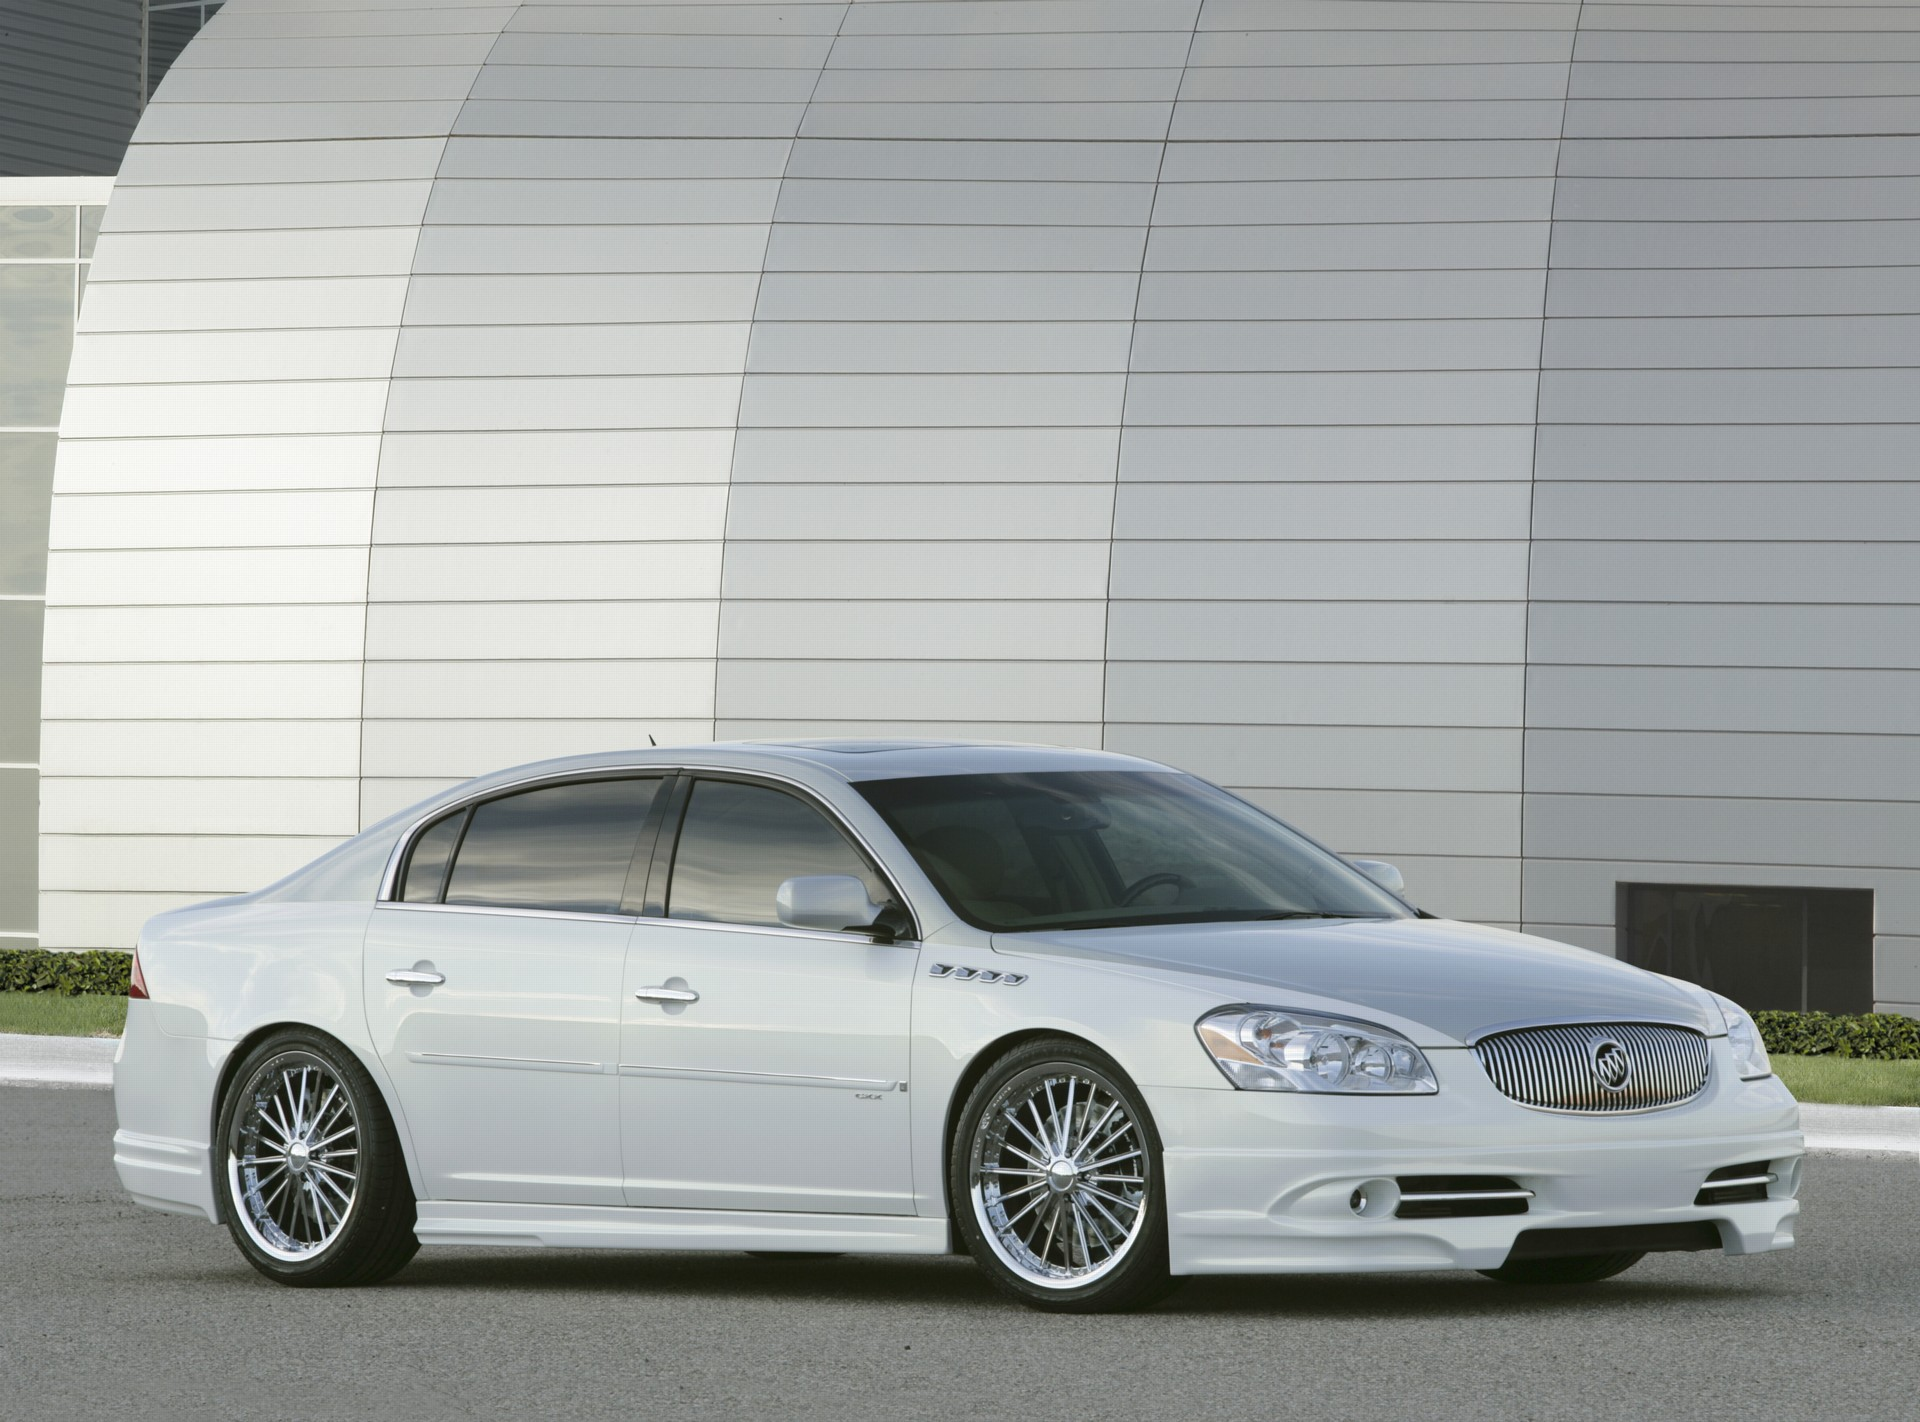 2006 Buick Lucerne >> 2006 Buick Lucerne CXX Luxury Liner Pictures, History, Value, Research, News - conceptcarz.com